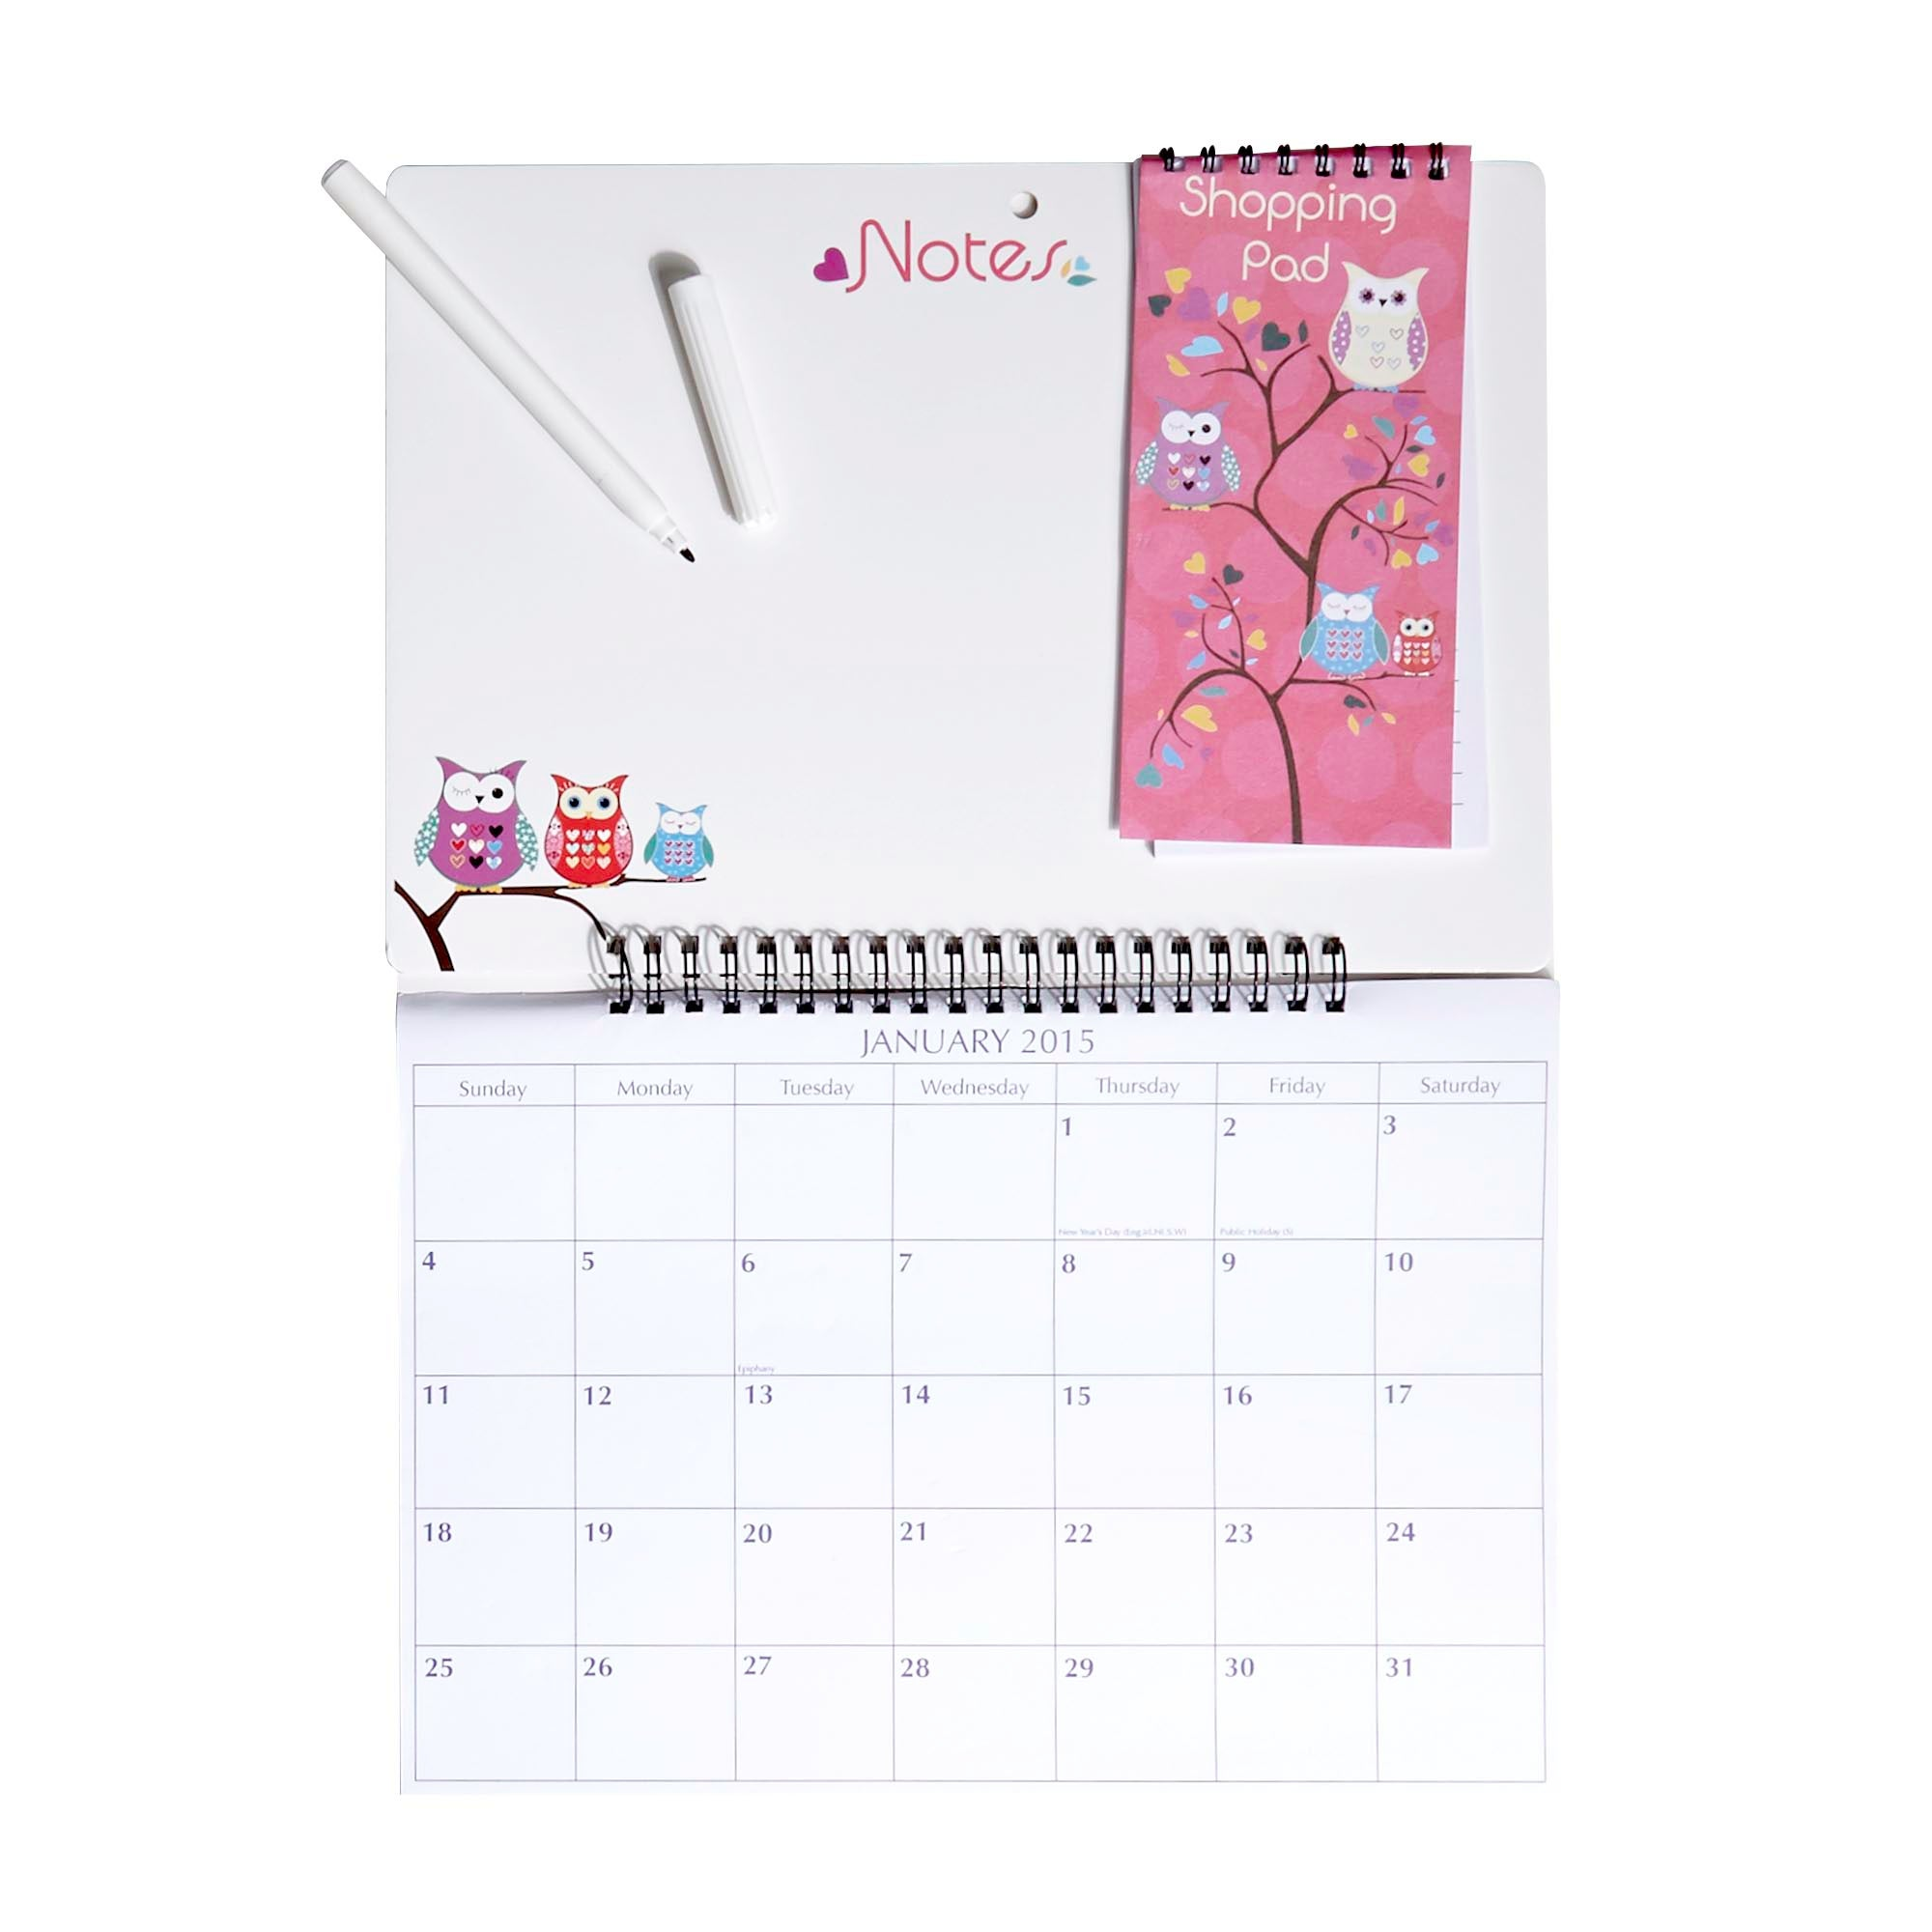 Owl Hanging 2015 Memo Calendar and Shopping List